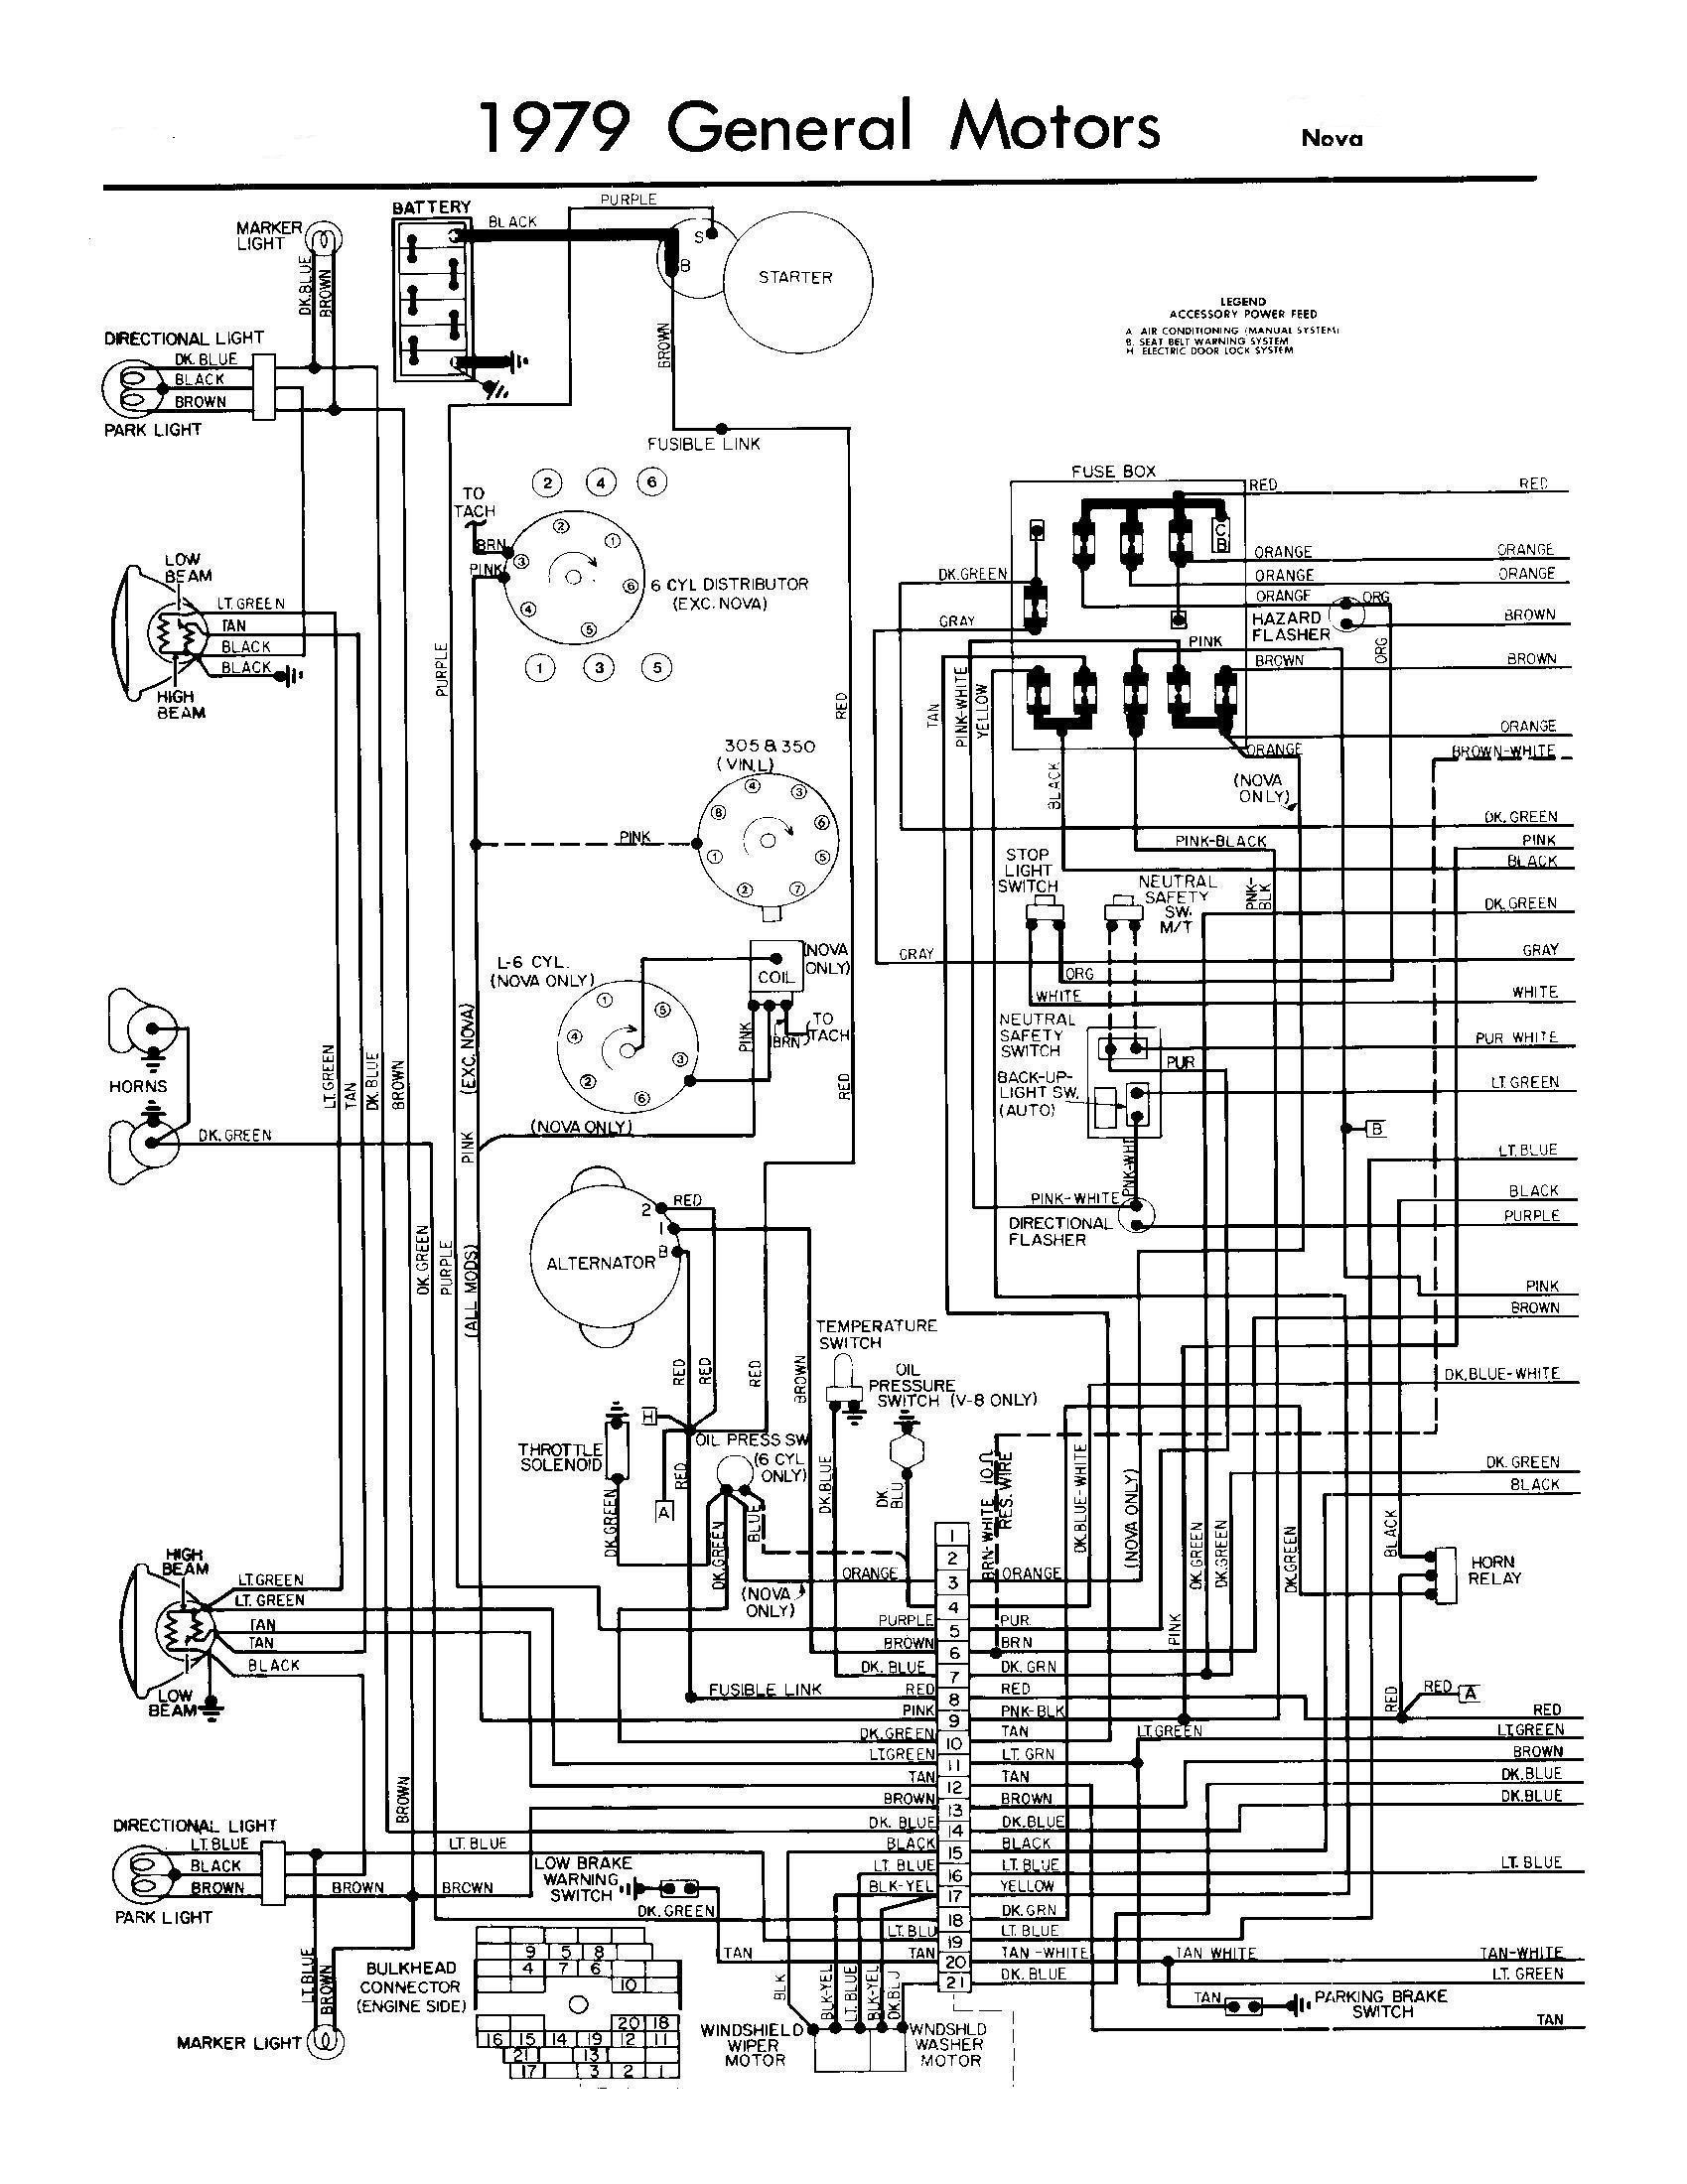 1996 Lexus Es300 Fuse Box Diagram Wiring Library 2001 Es 300 1991 Ls400 Lzk Gallery Data Schema U2022 Rh Exoticterra Co 1999